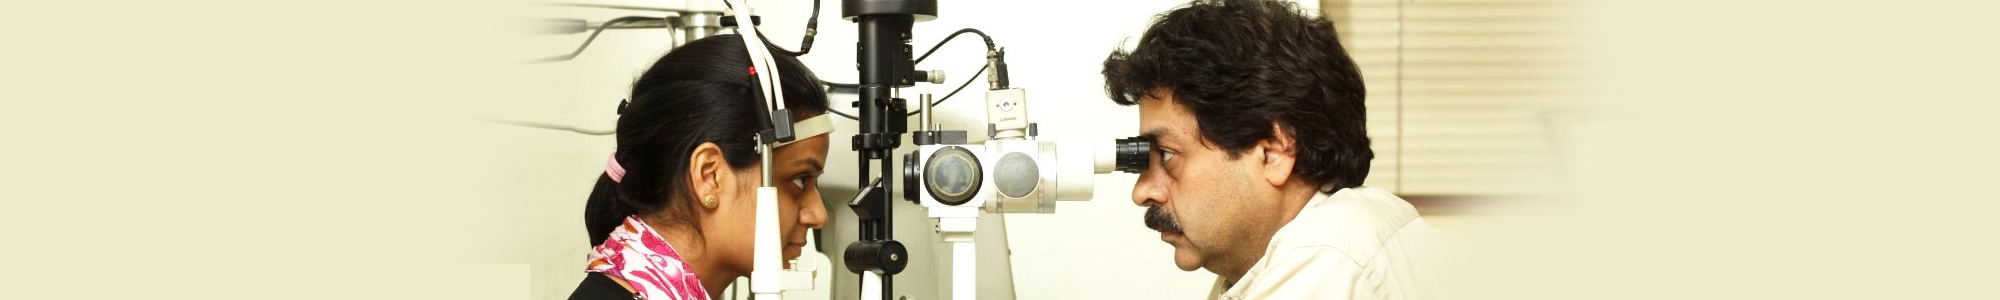 Ophthalmologist In Pitampura, Ophthalmology In Pitampura, Ophthalmology In Delhi, Eye Surgeon In Pitampura, Eye Surgeon In Delhi